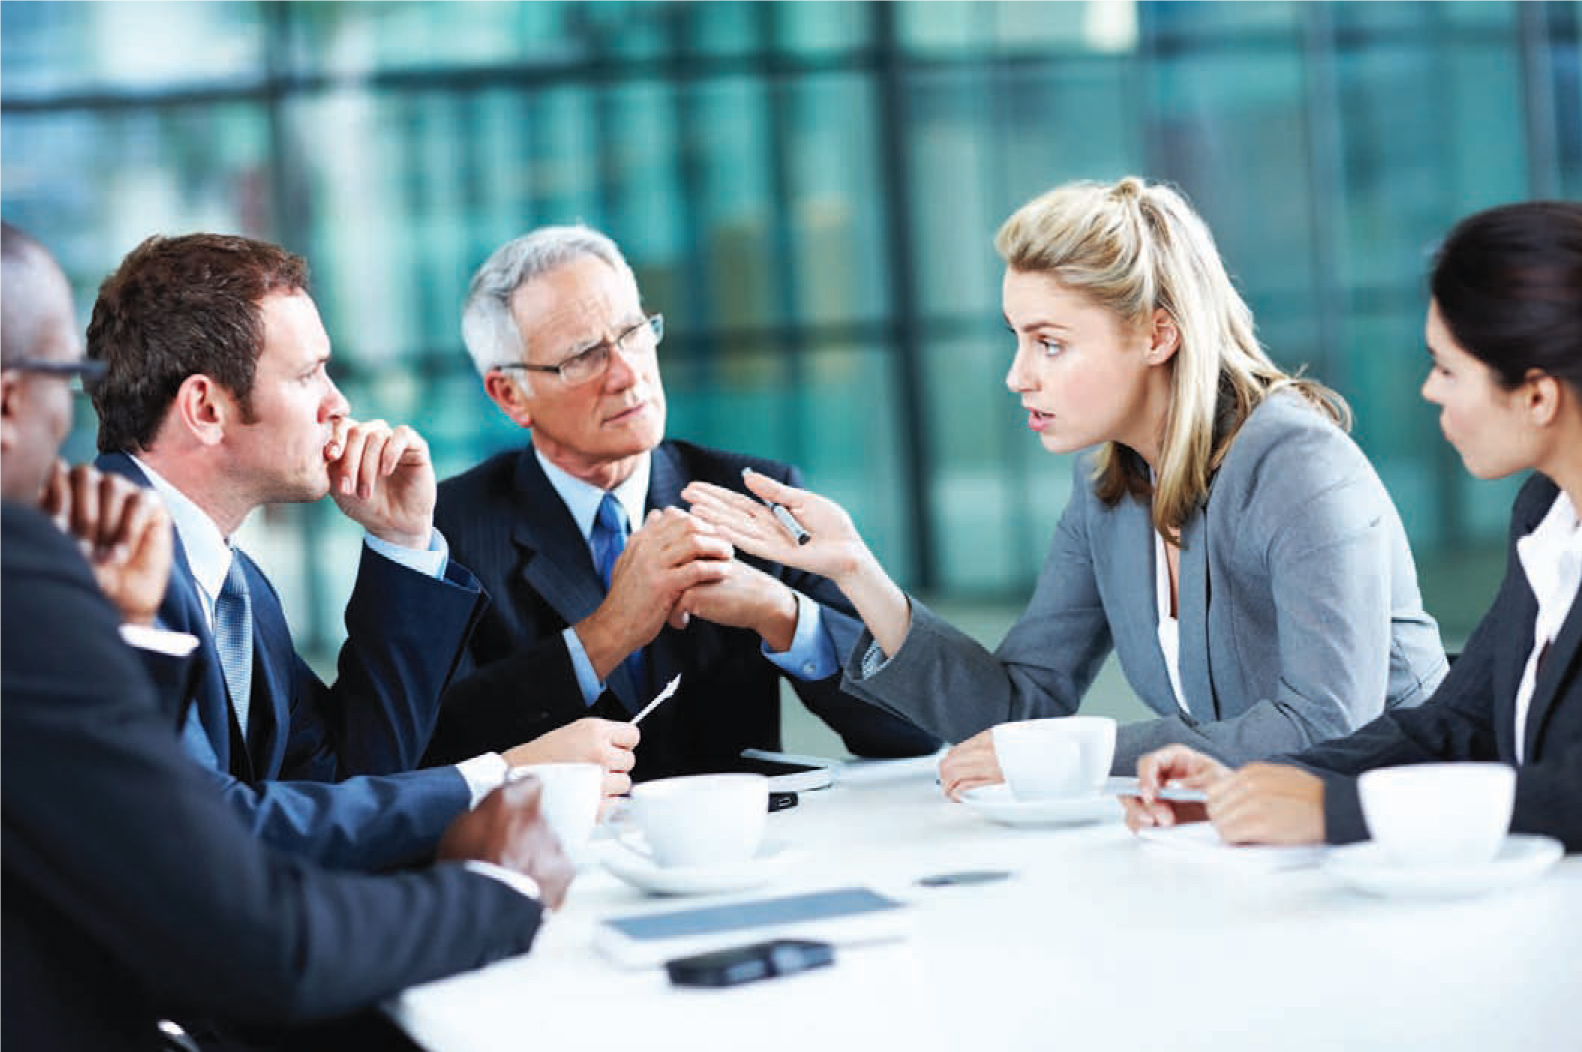 business negotiation scenario hr A win-win approach to negotiation aims to find an outcome that satisfies all parties  principled negotiation within the win-win scenario  beating business jargon.